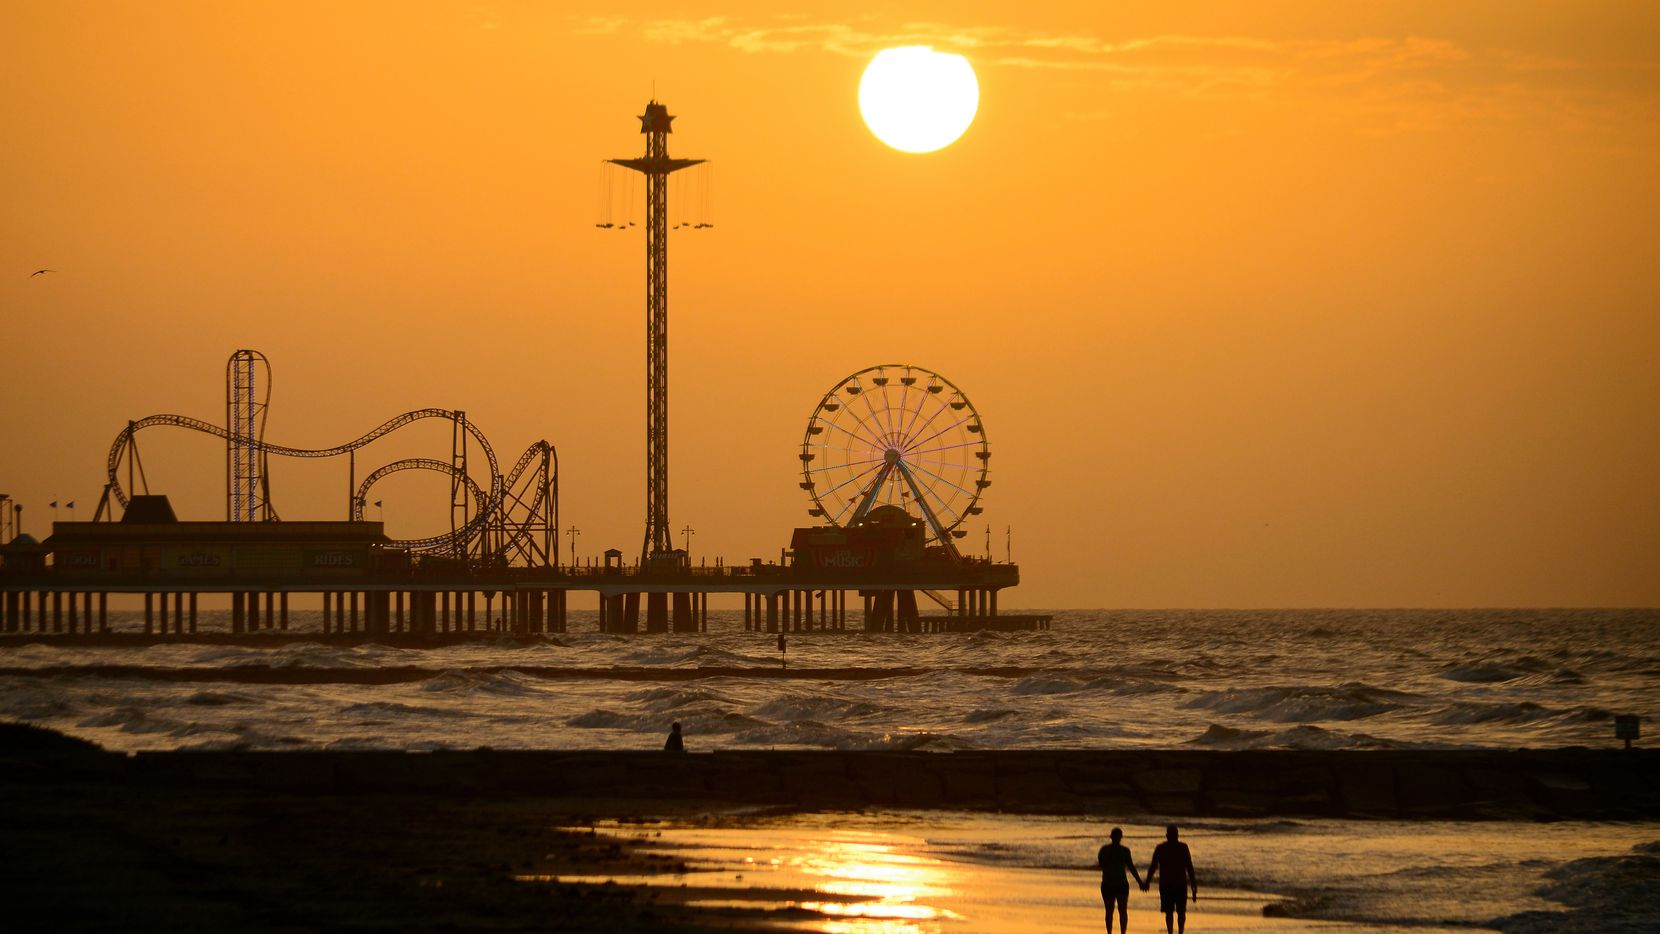 Every morning, Galveston's population nearly doubles, then falls again at night when people who work on the island head back across the causeway. Figuring out how to keep more of those workers on the island is a major challenge identified by Vision Galveston.    The historic Pleasure Pier (shown here) is one of Galveston's iconic tourist draws.